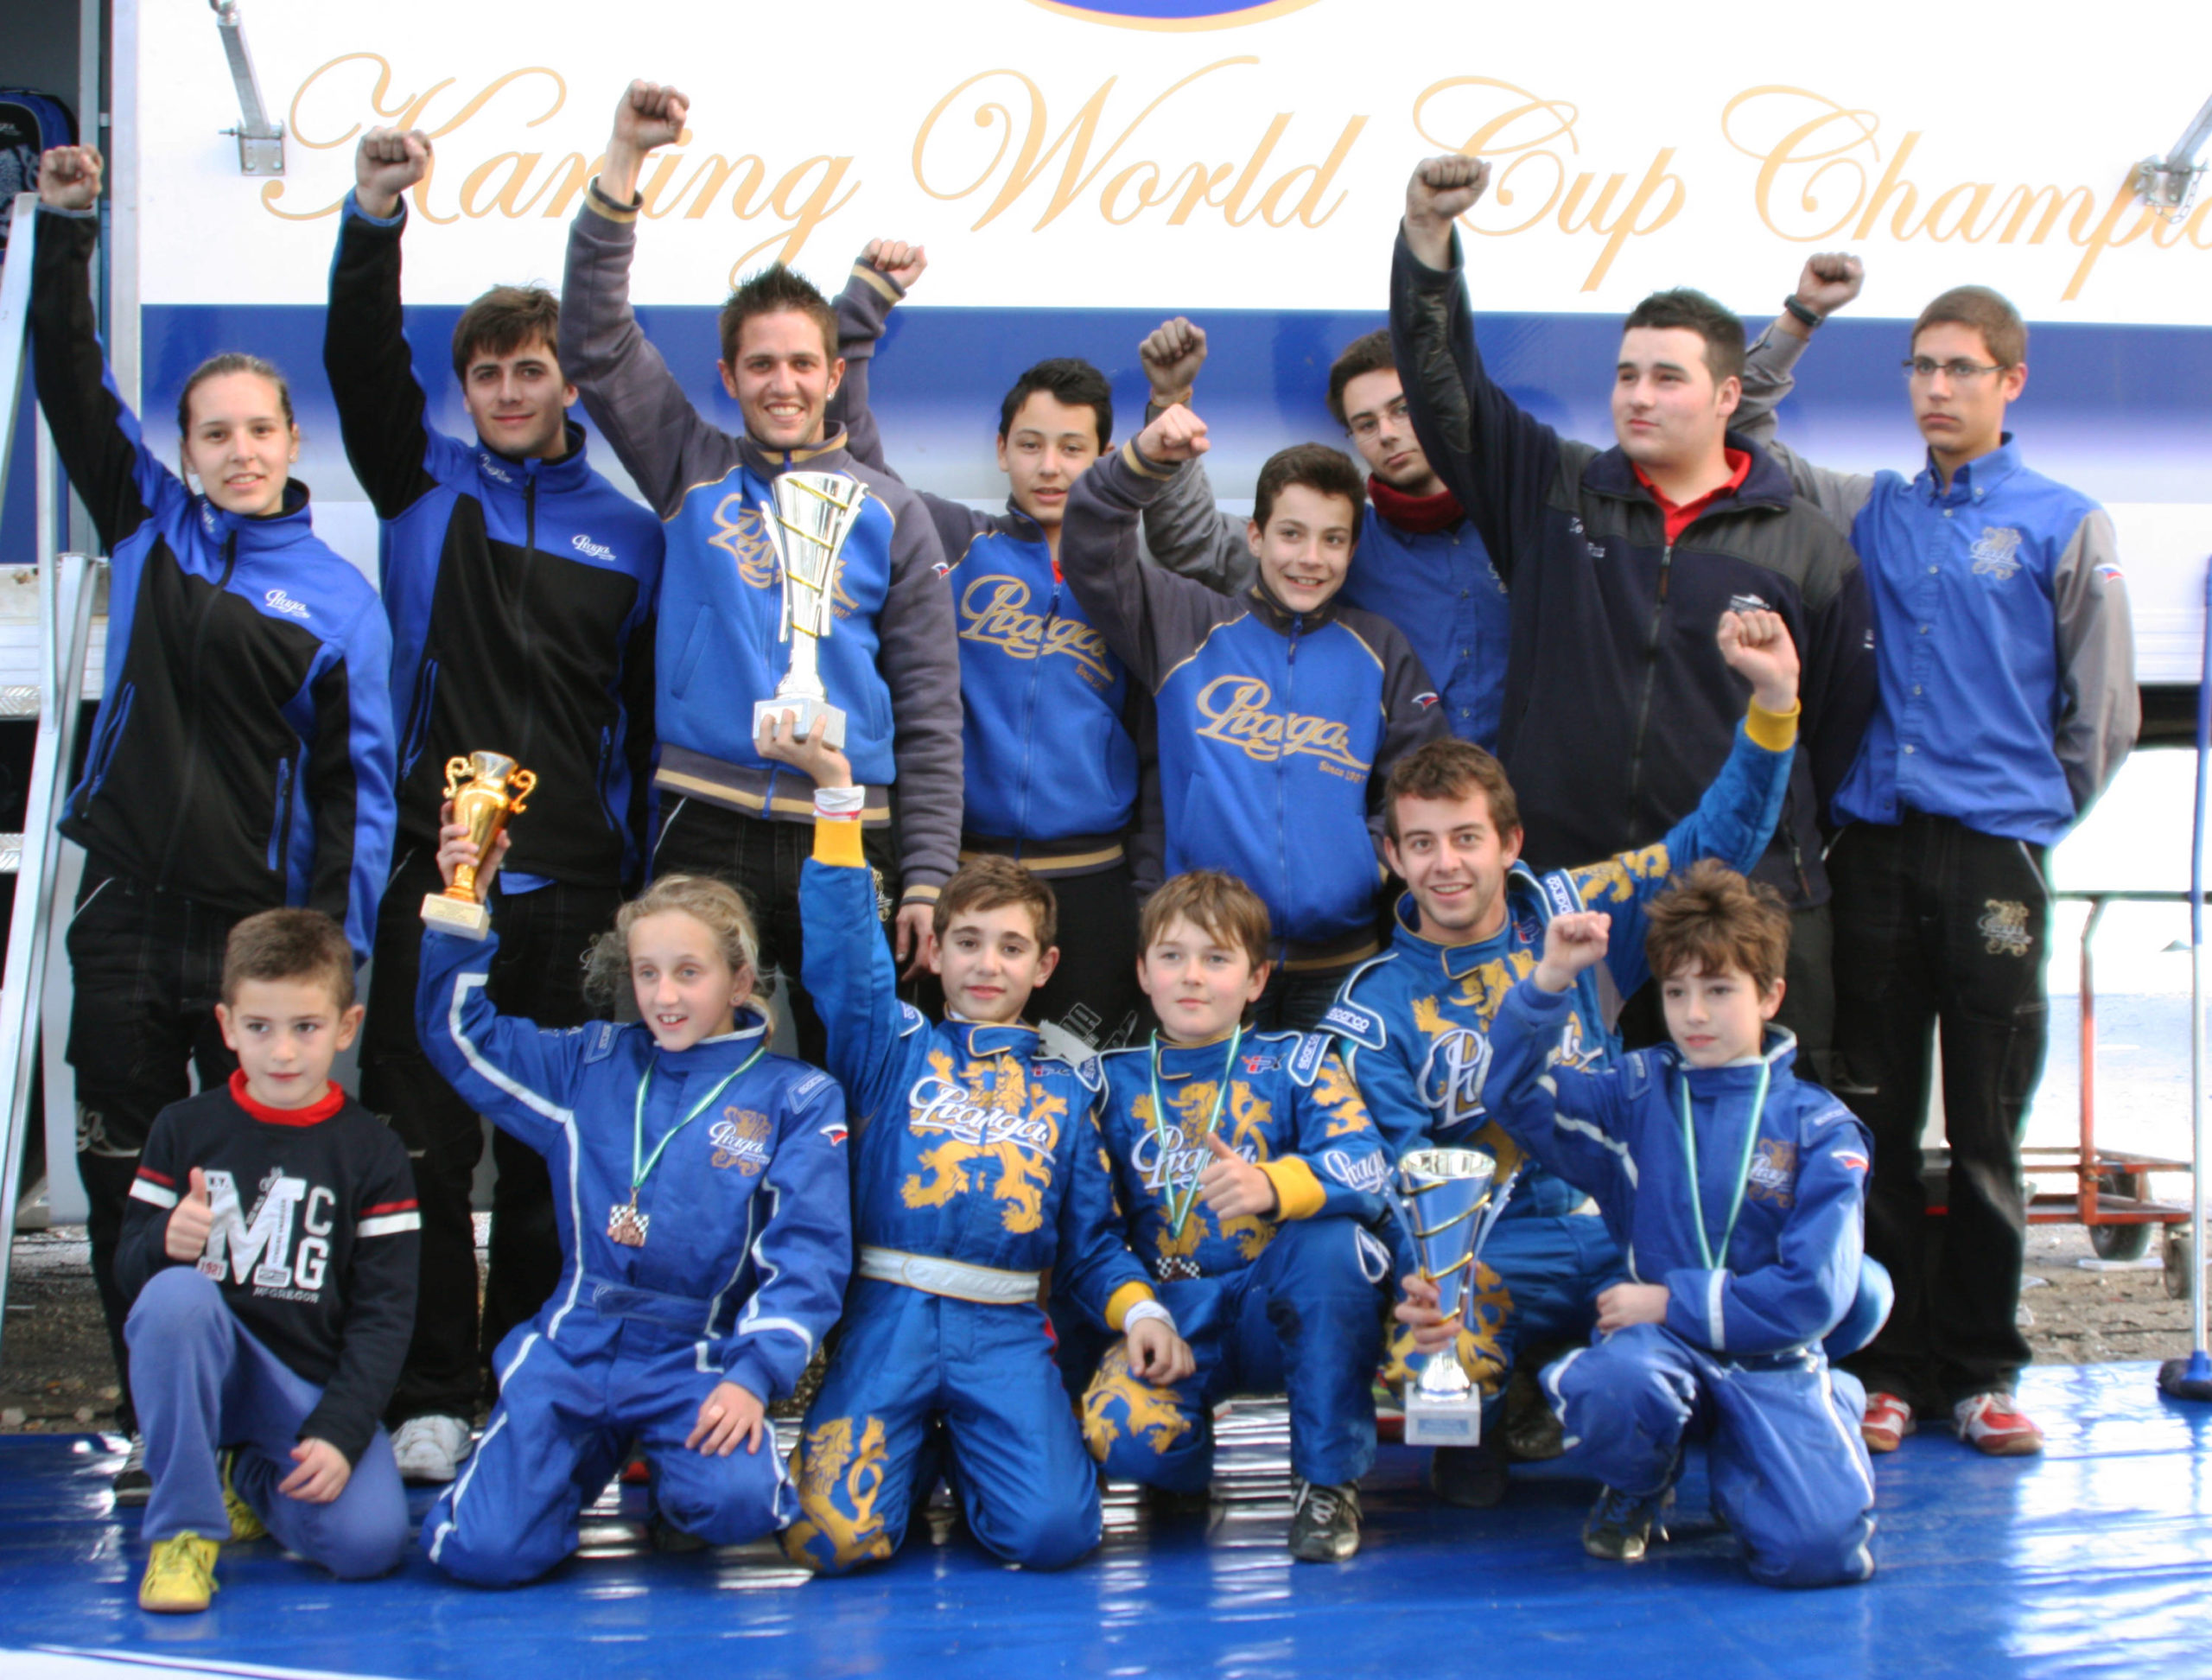 Praga won 2 out of 4 categories at Winter Cup Andalucia